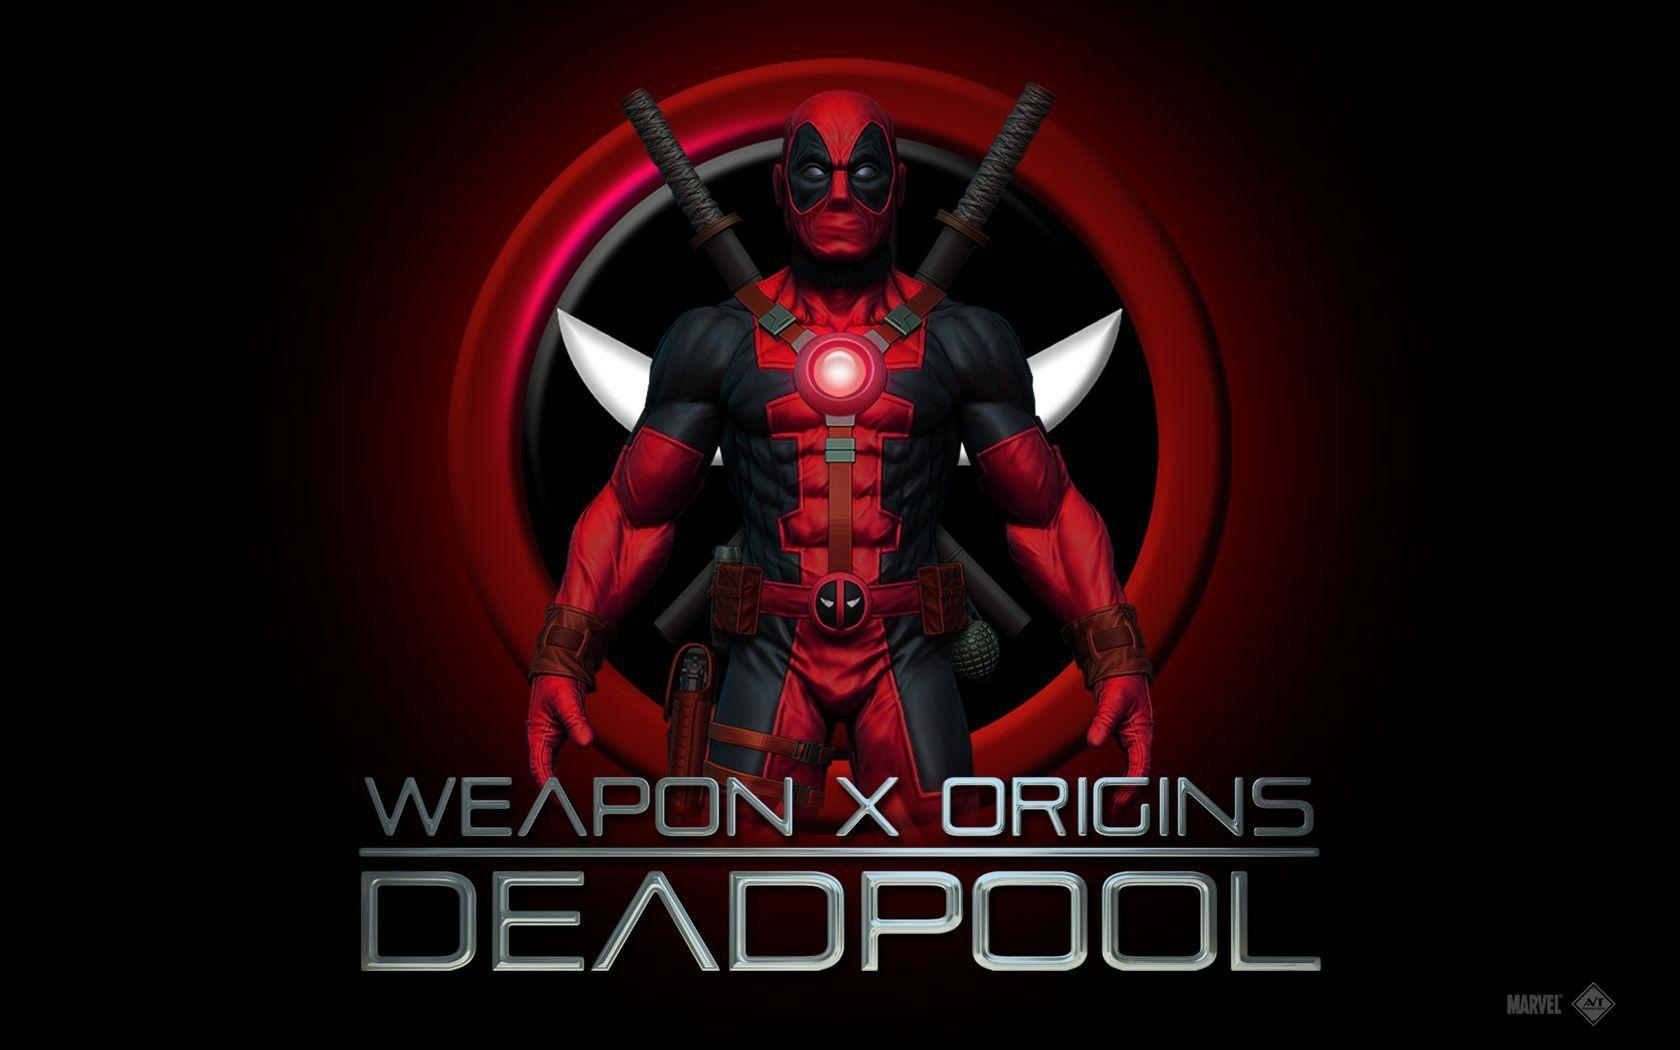 Movie Wallpapers Deadpool The Movie Wallpaper | HD Wallpaper For ...